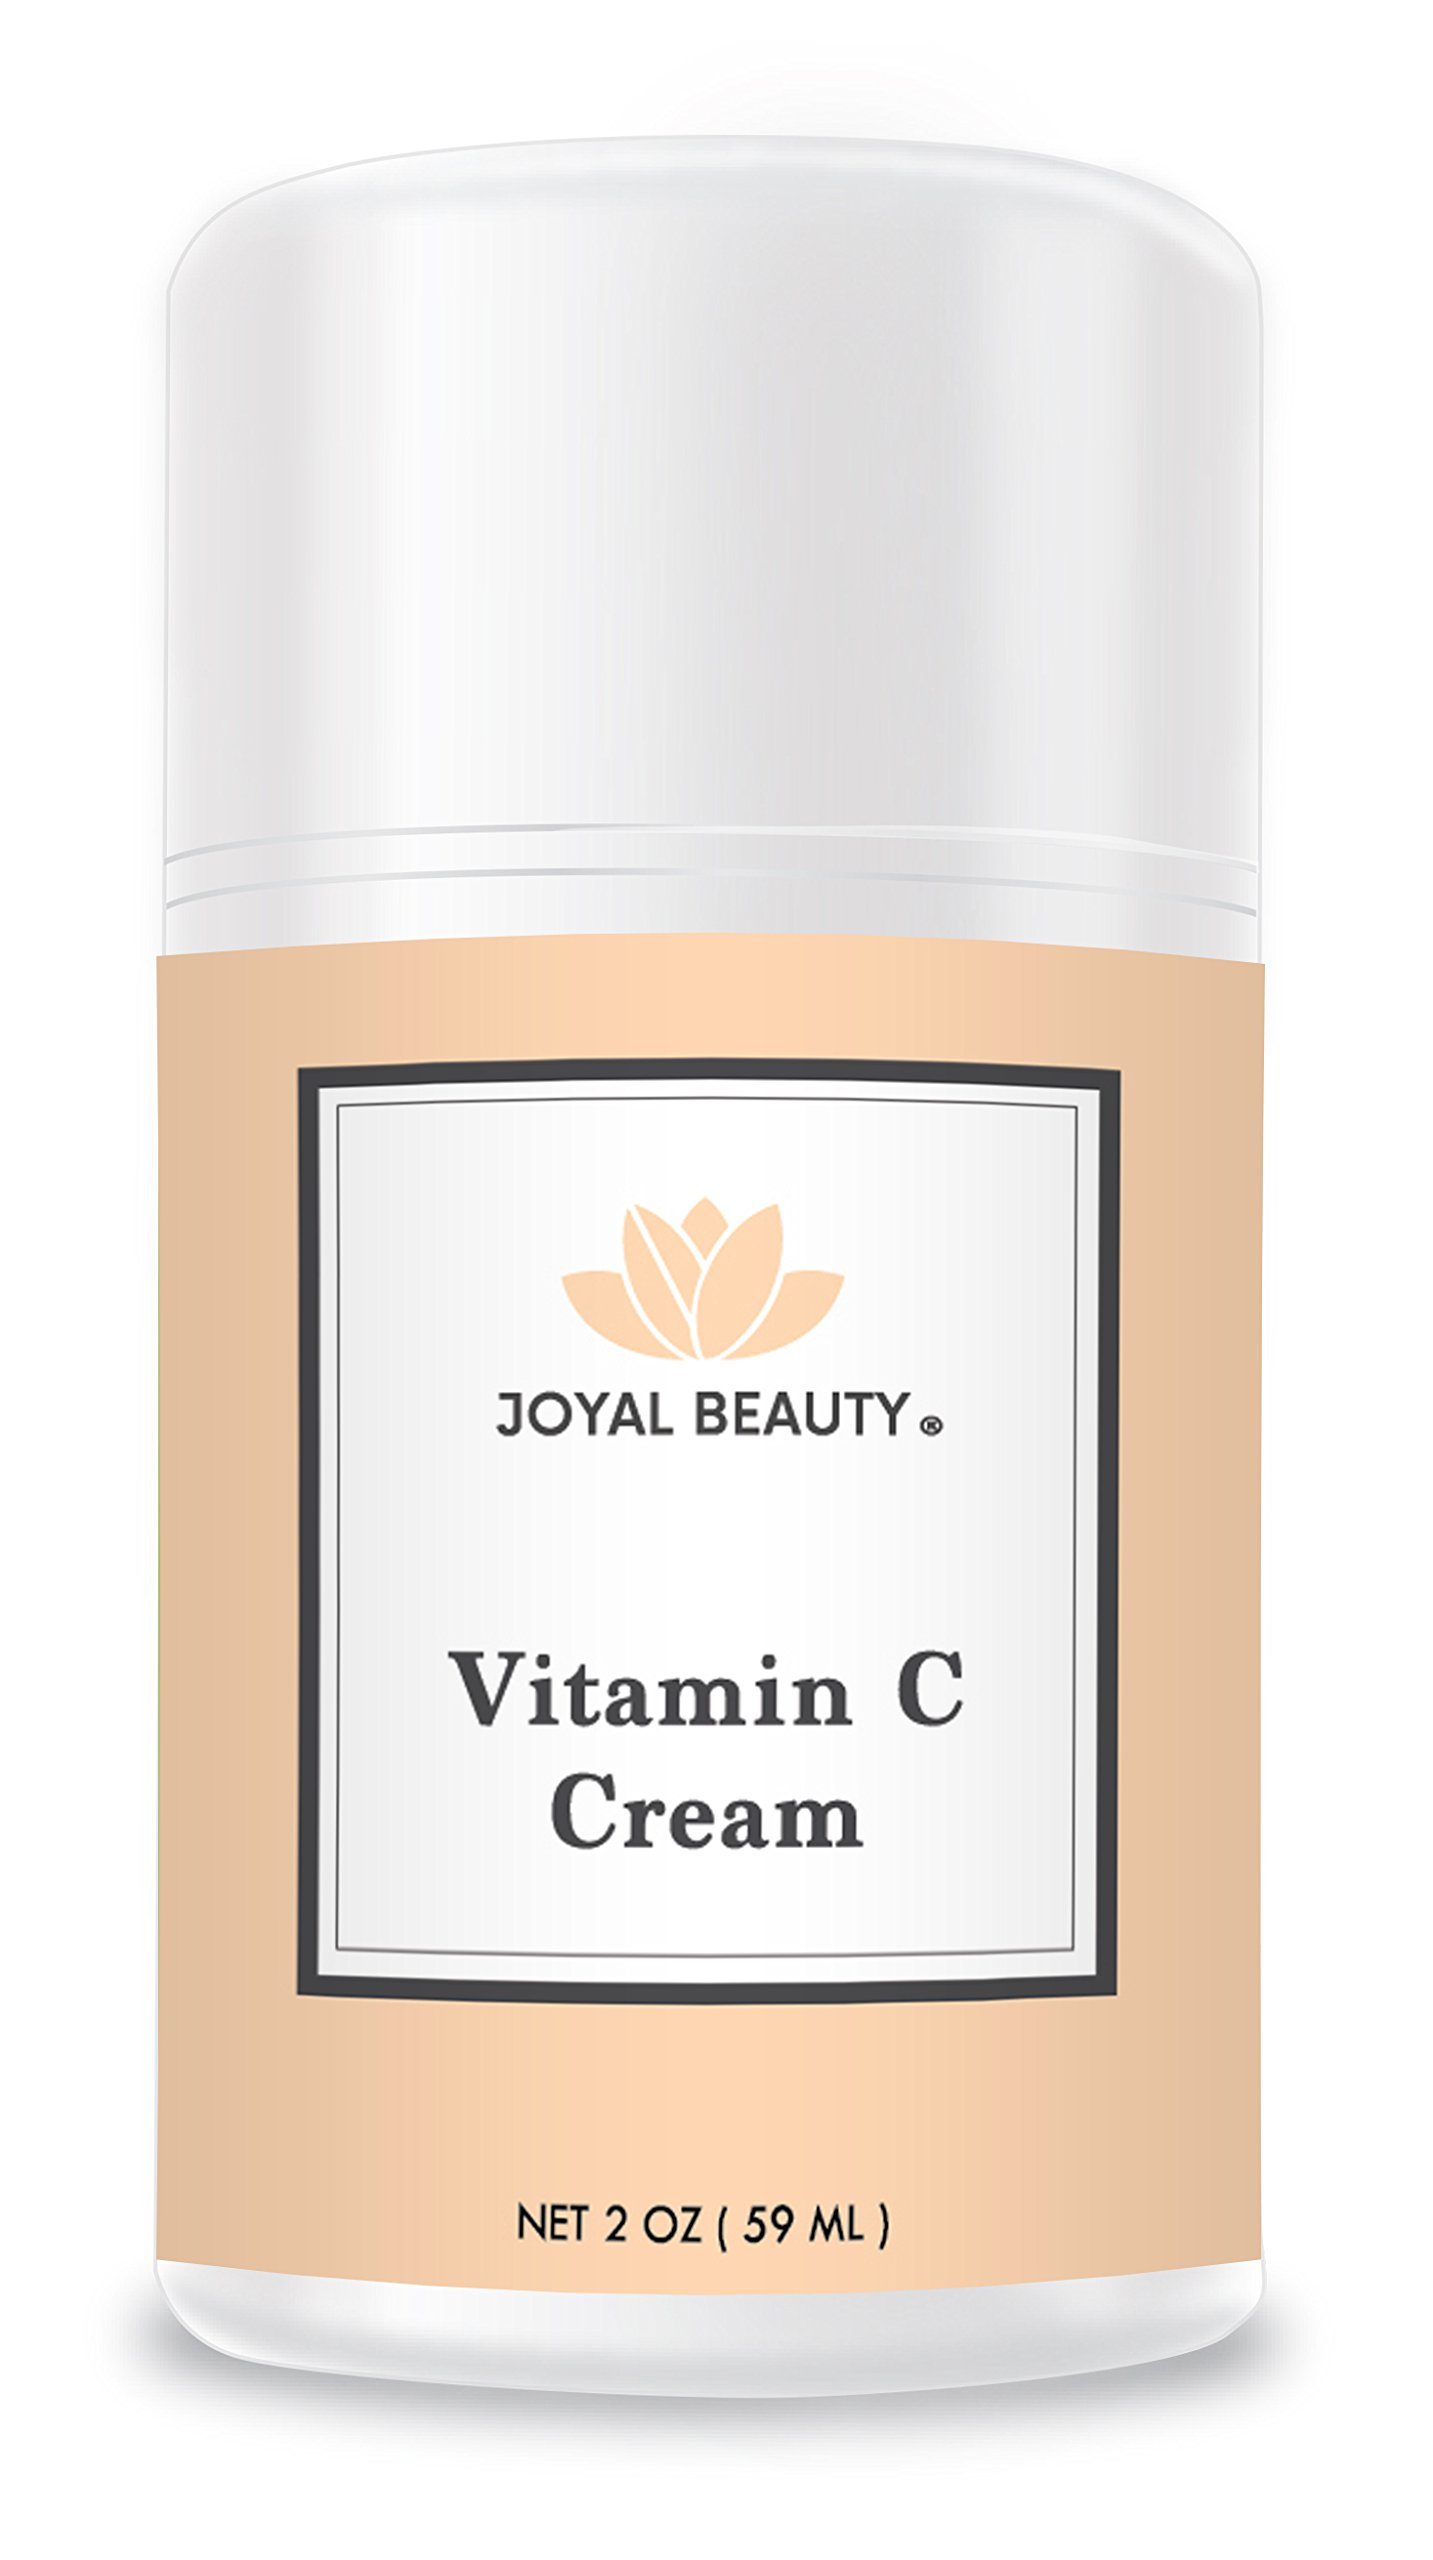 Joyal Beauty Organic Vitamin C Cream for Your Face Skin Body Eyes. Best Day and Night Natural Bright Ultra Hydration Moisturizer with Essential Oils for Men and Women to Nourish and Soften Dry Skin.